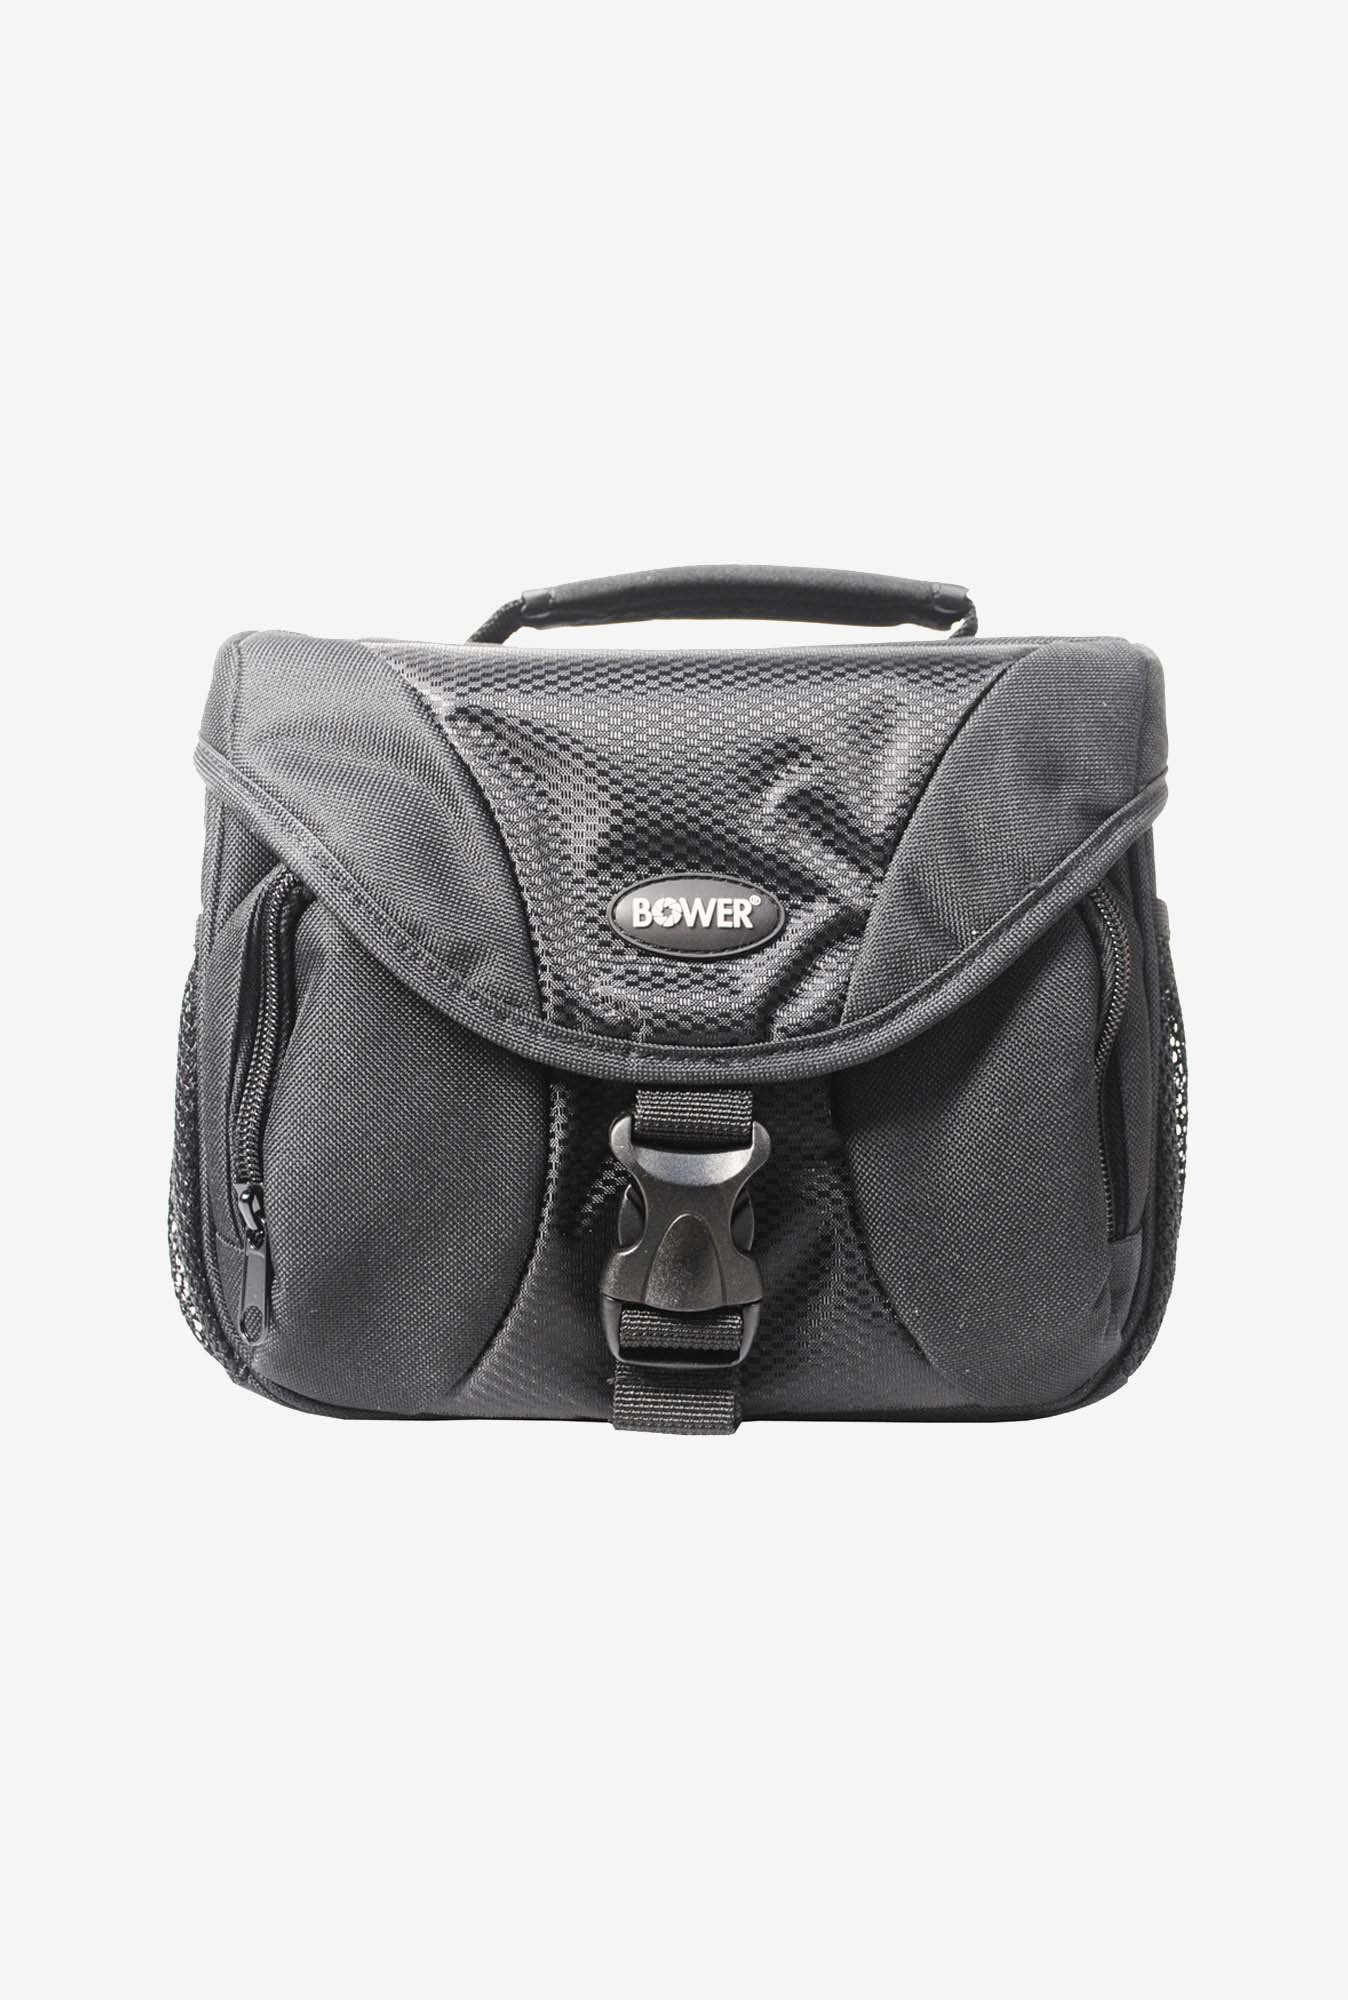 Bower SCB700 Digital Universal Medium Gadget Bag (Black)